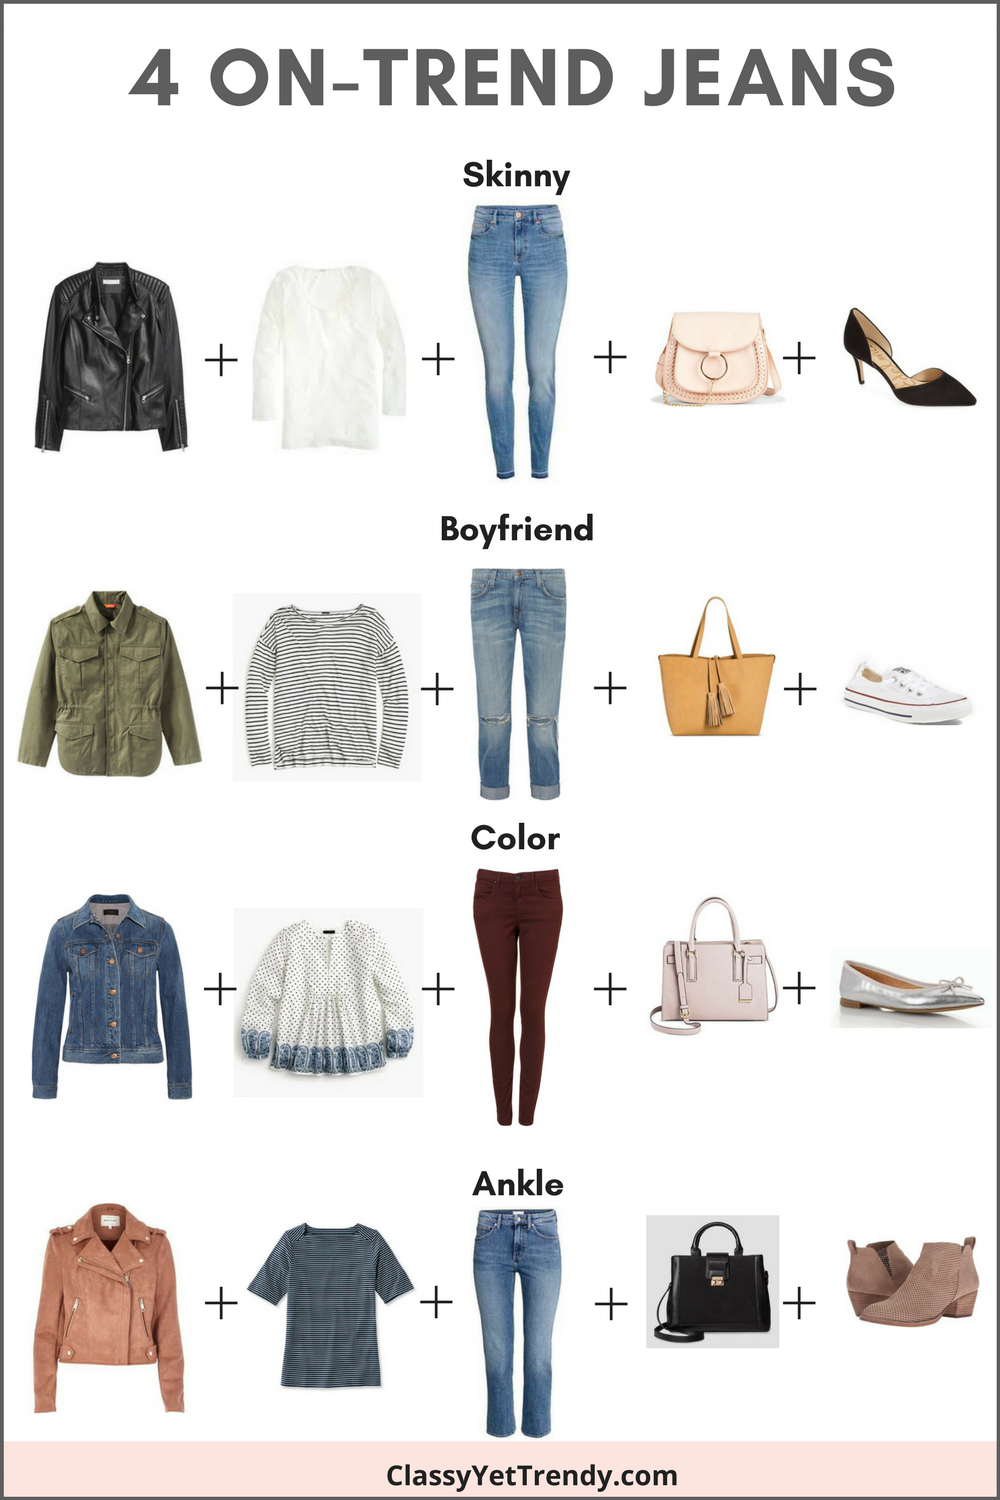 4 On-Trend Jeans & How To Wear Them -